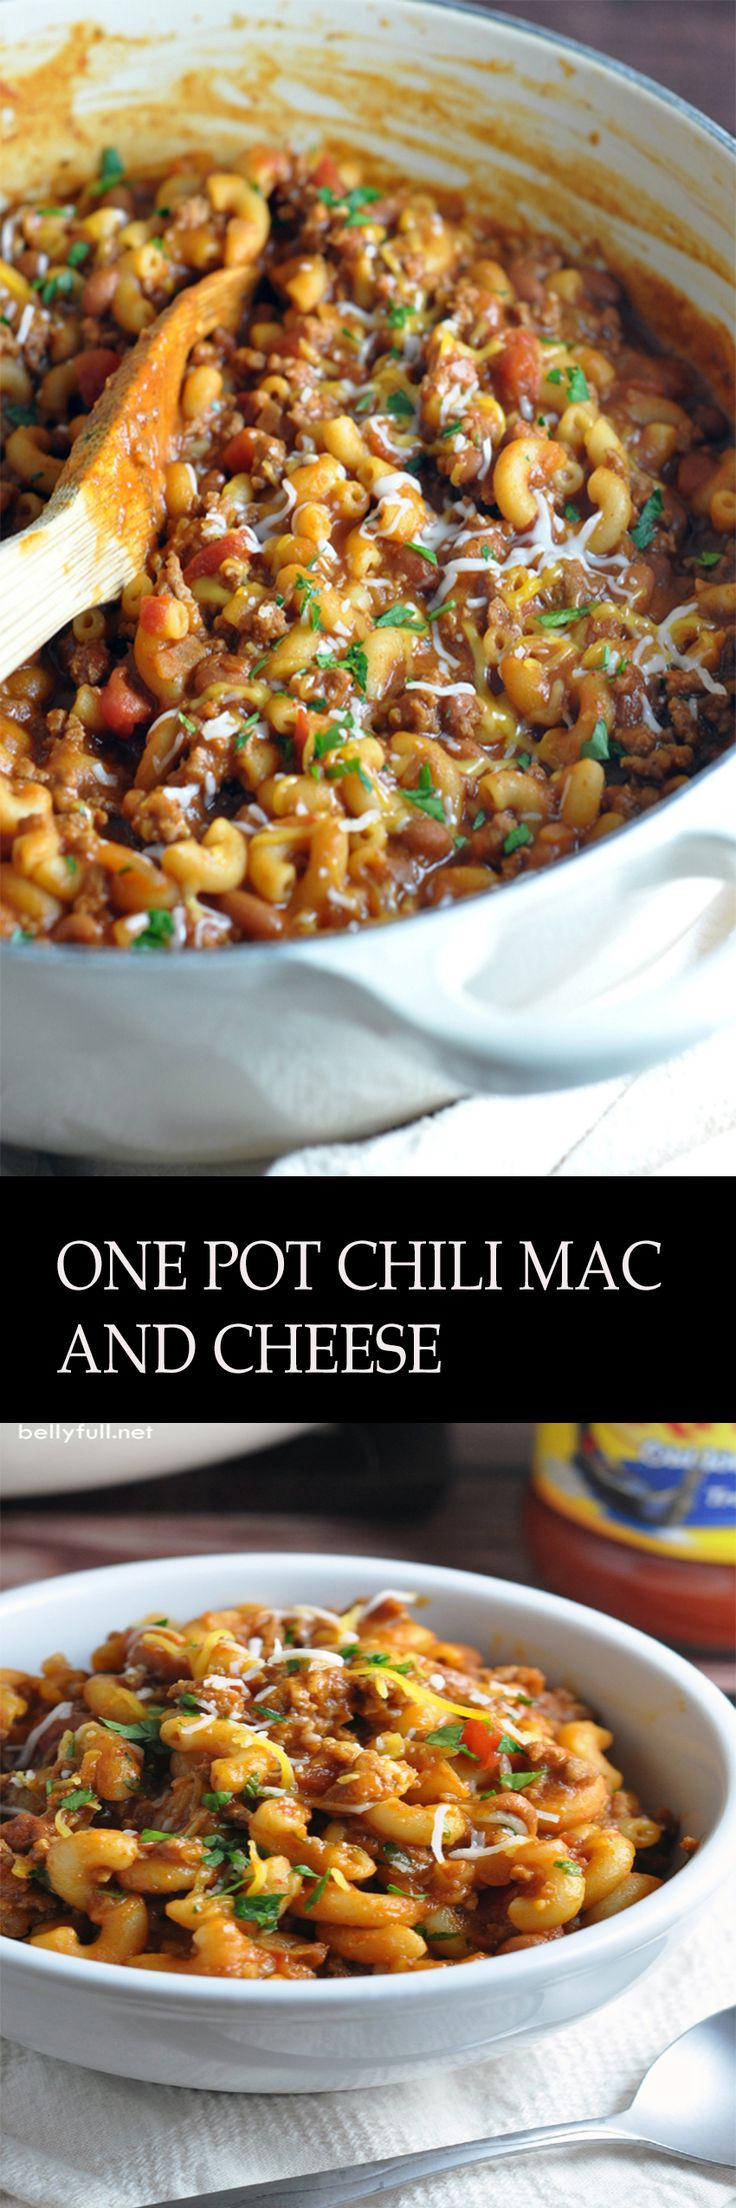 One Pot Chili Mac and Cheese – two favorite comfort foods come together in this super easy, one-pot dish that the whole family will go crazy